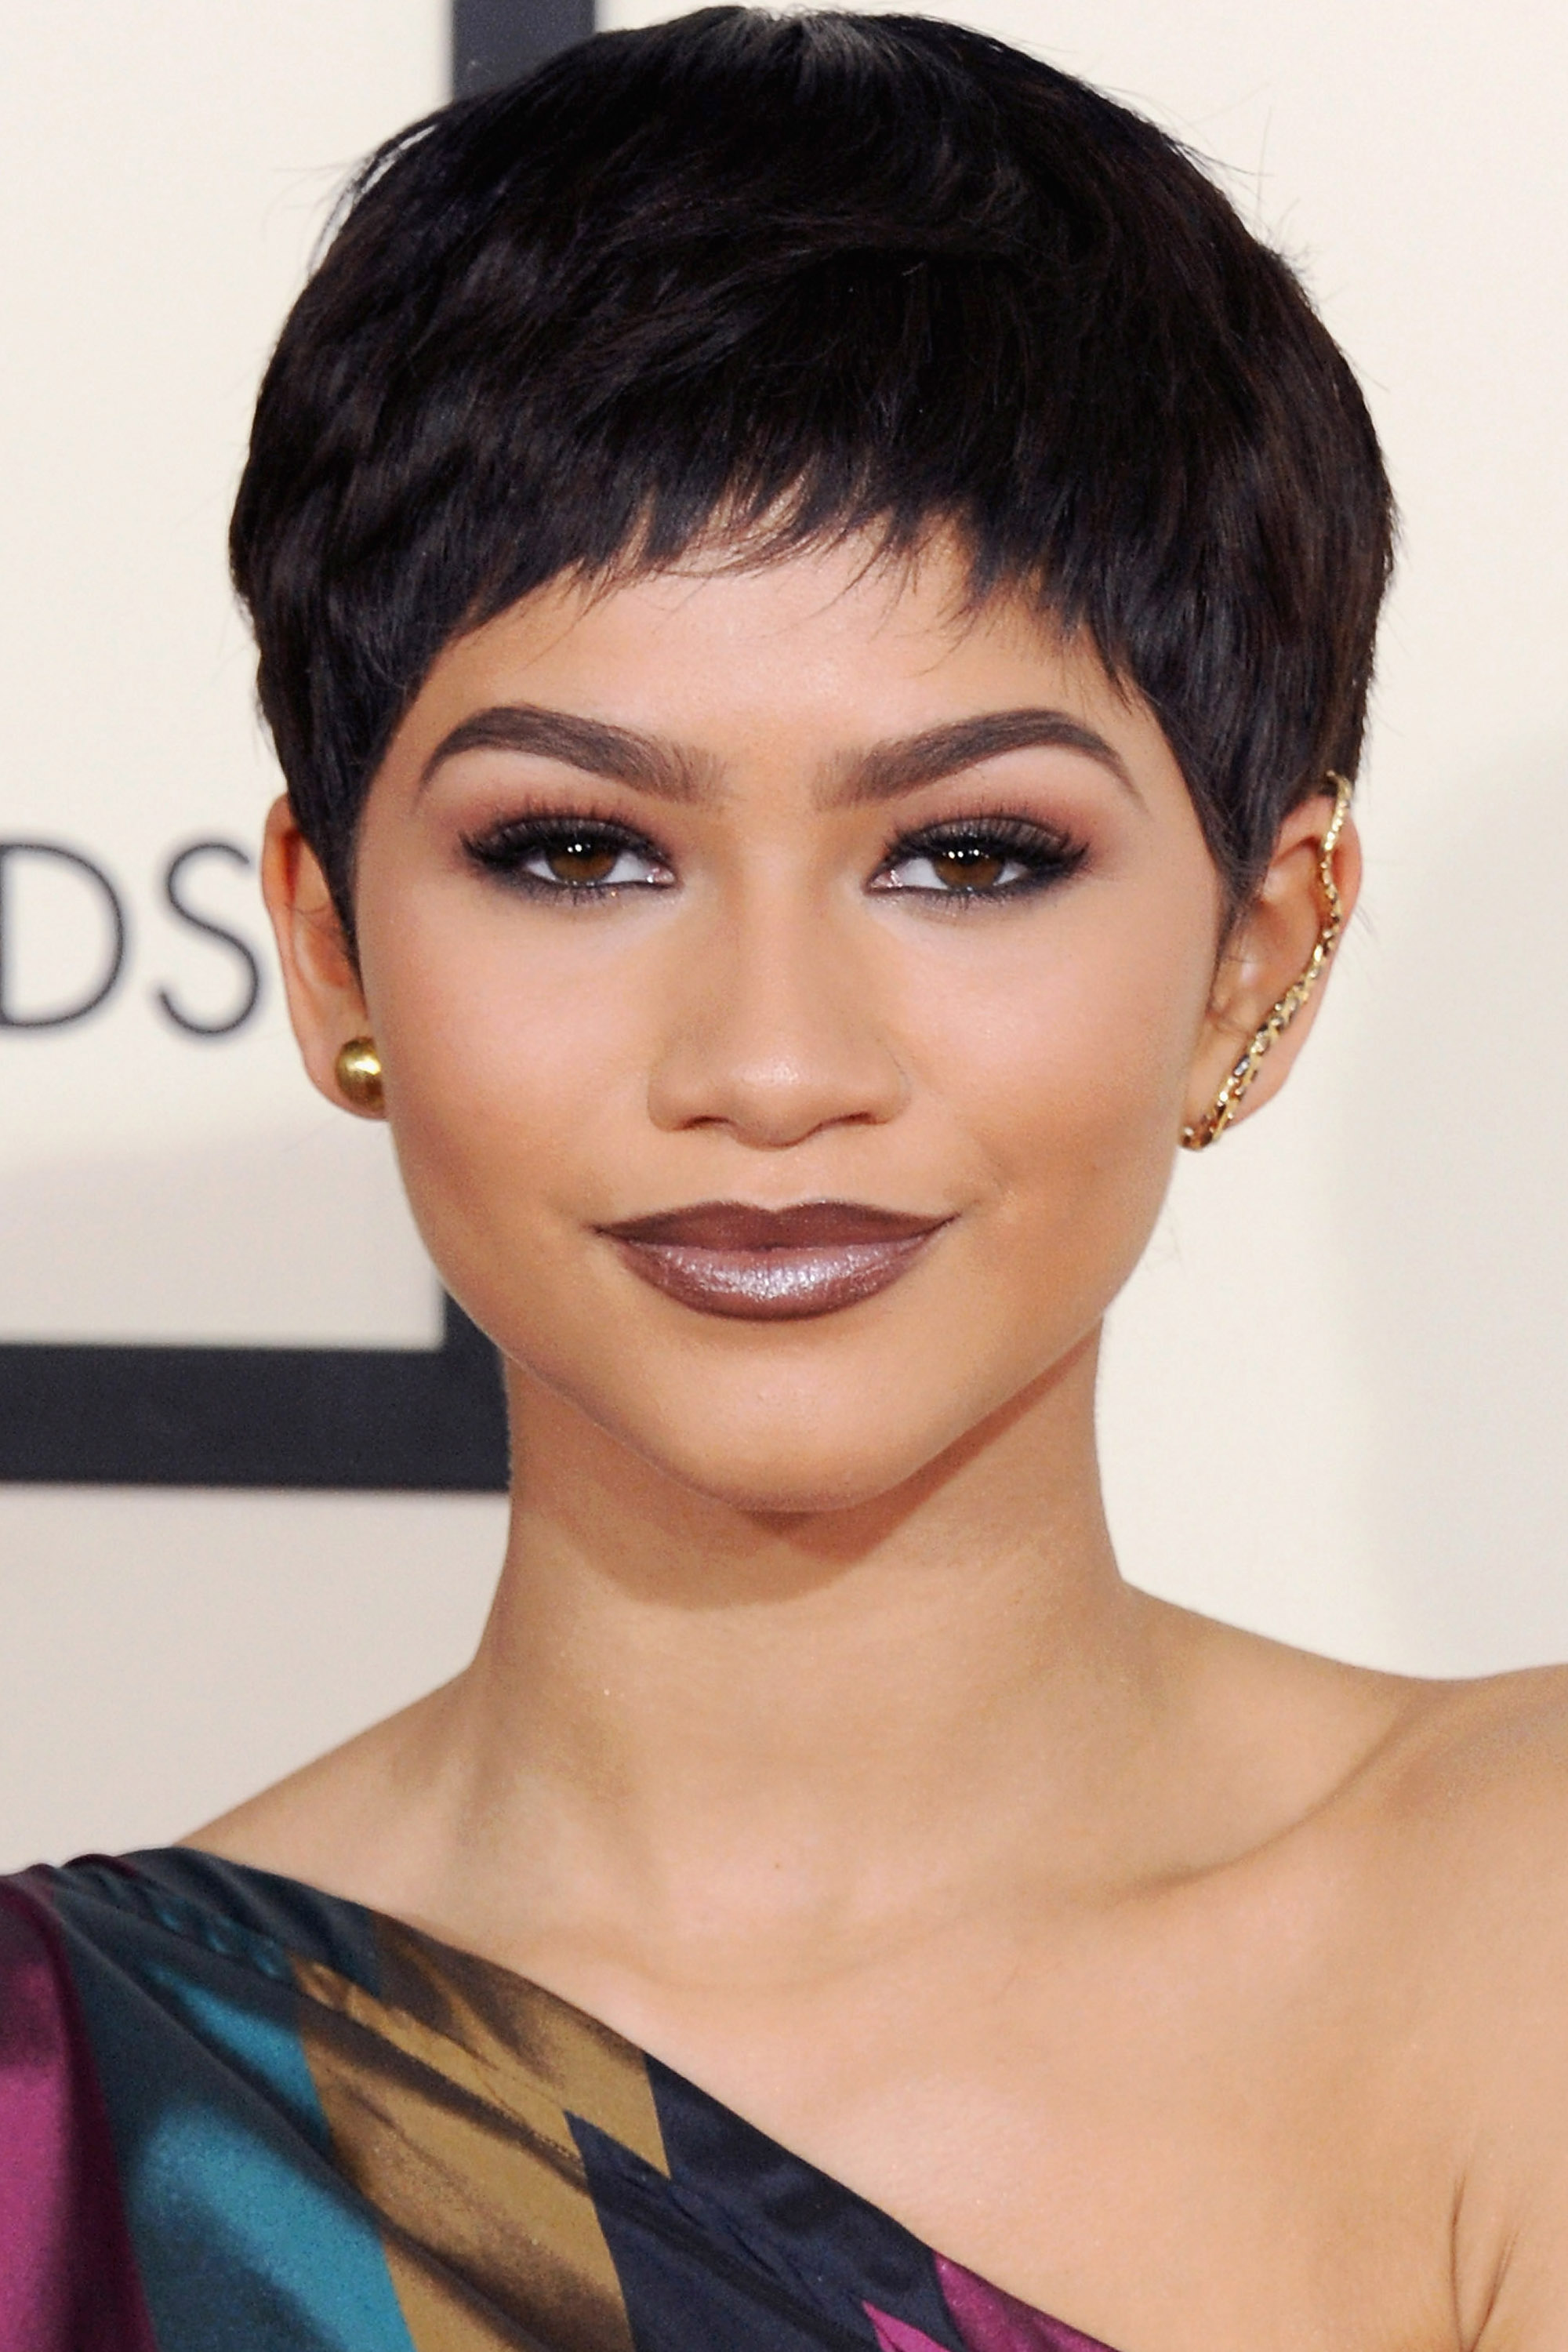 Trendy Hairstyles 2014: 42 Pixie Cuts We Love For 2017